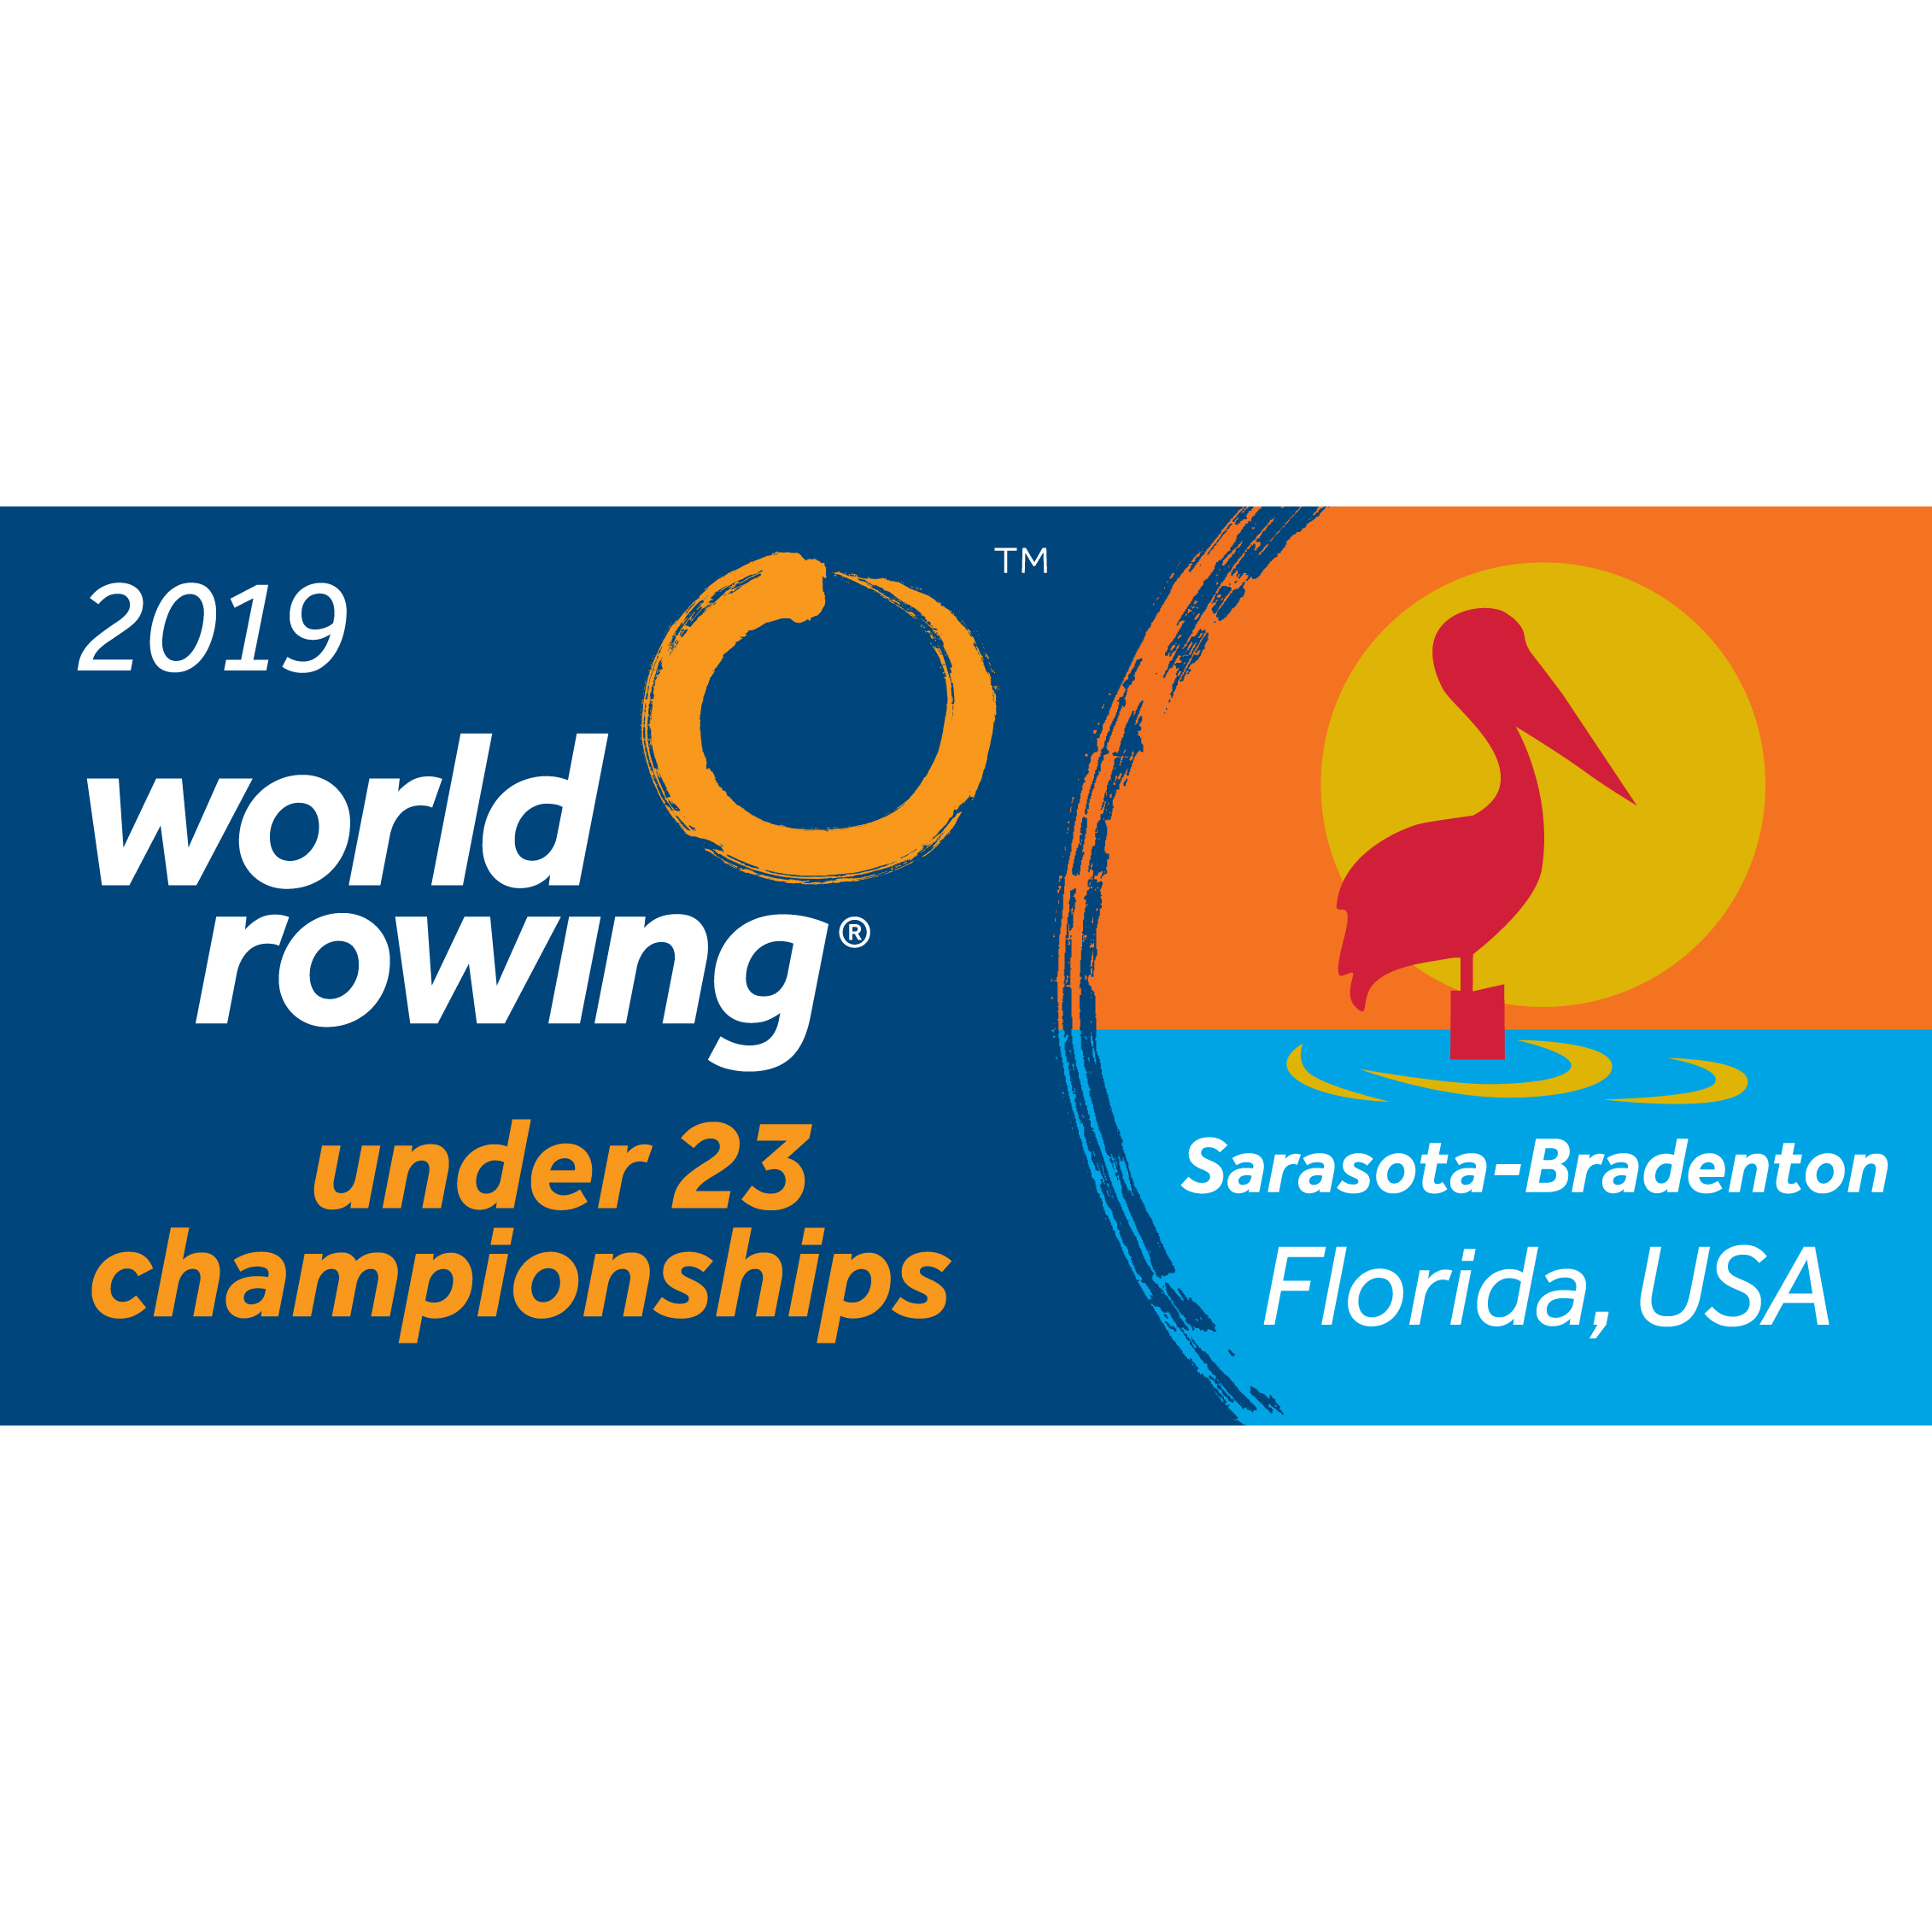 2019 World Rowing U23 Championships